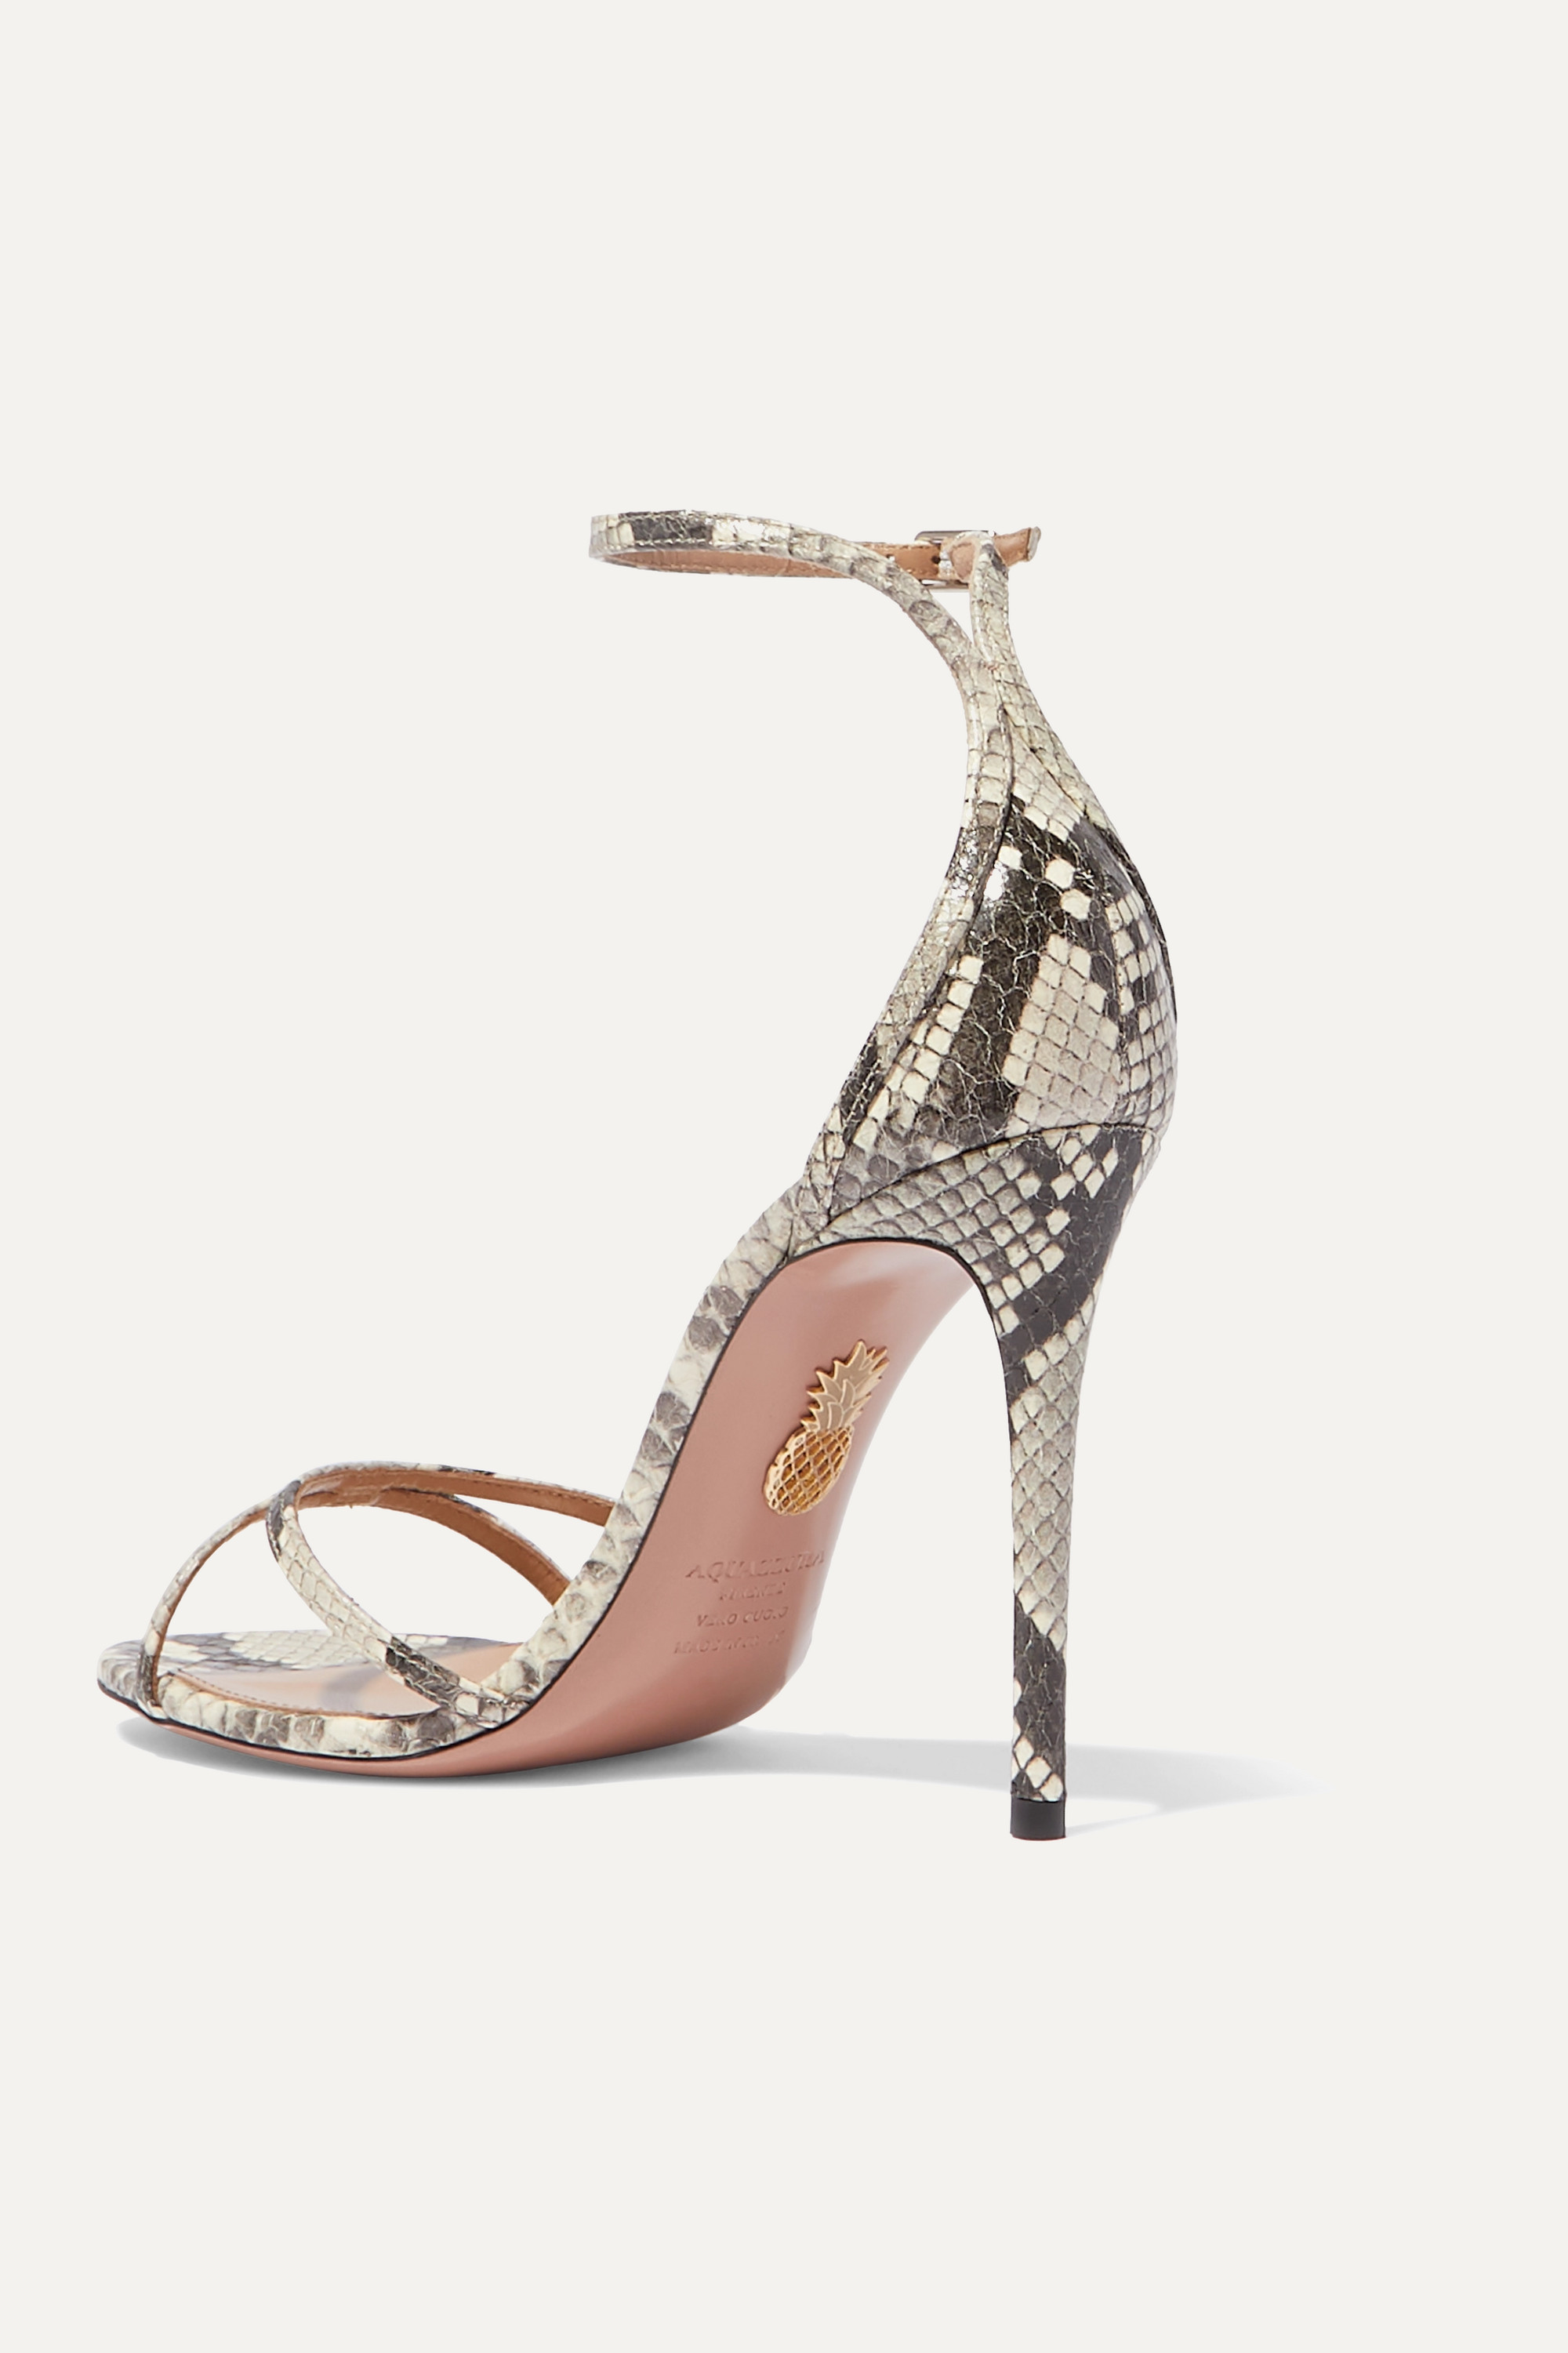 Aquazzura Purist 105 锦蛇皮凉鞋